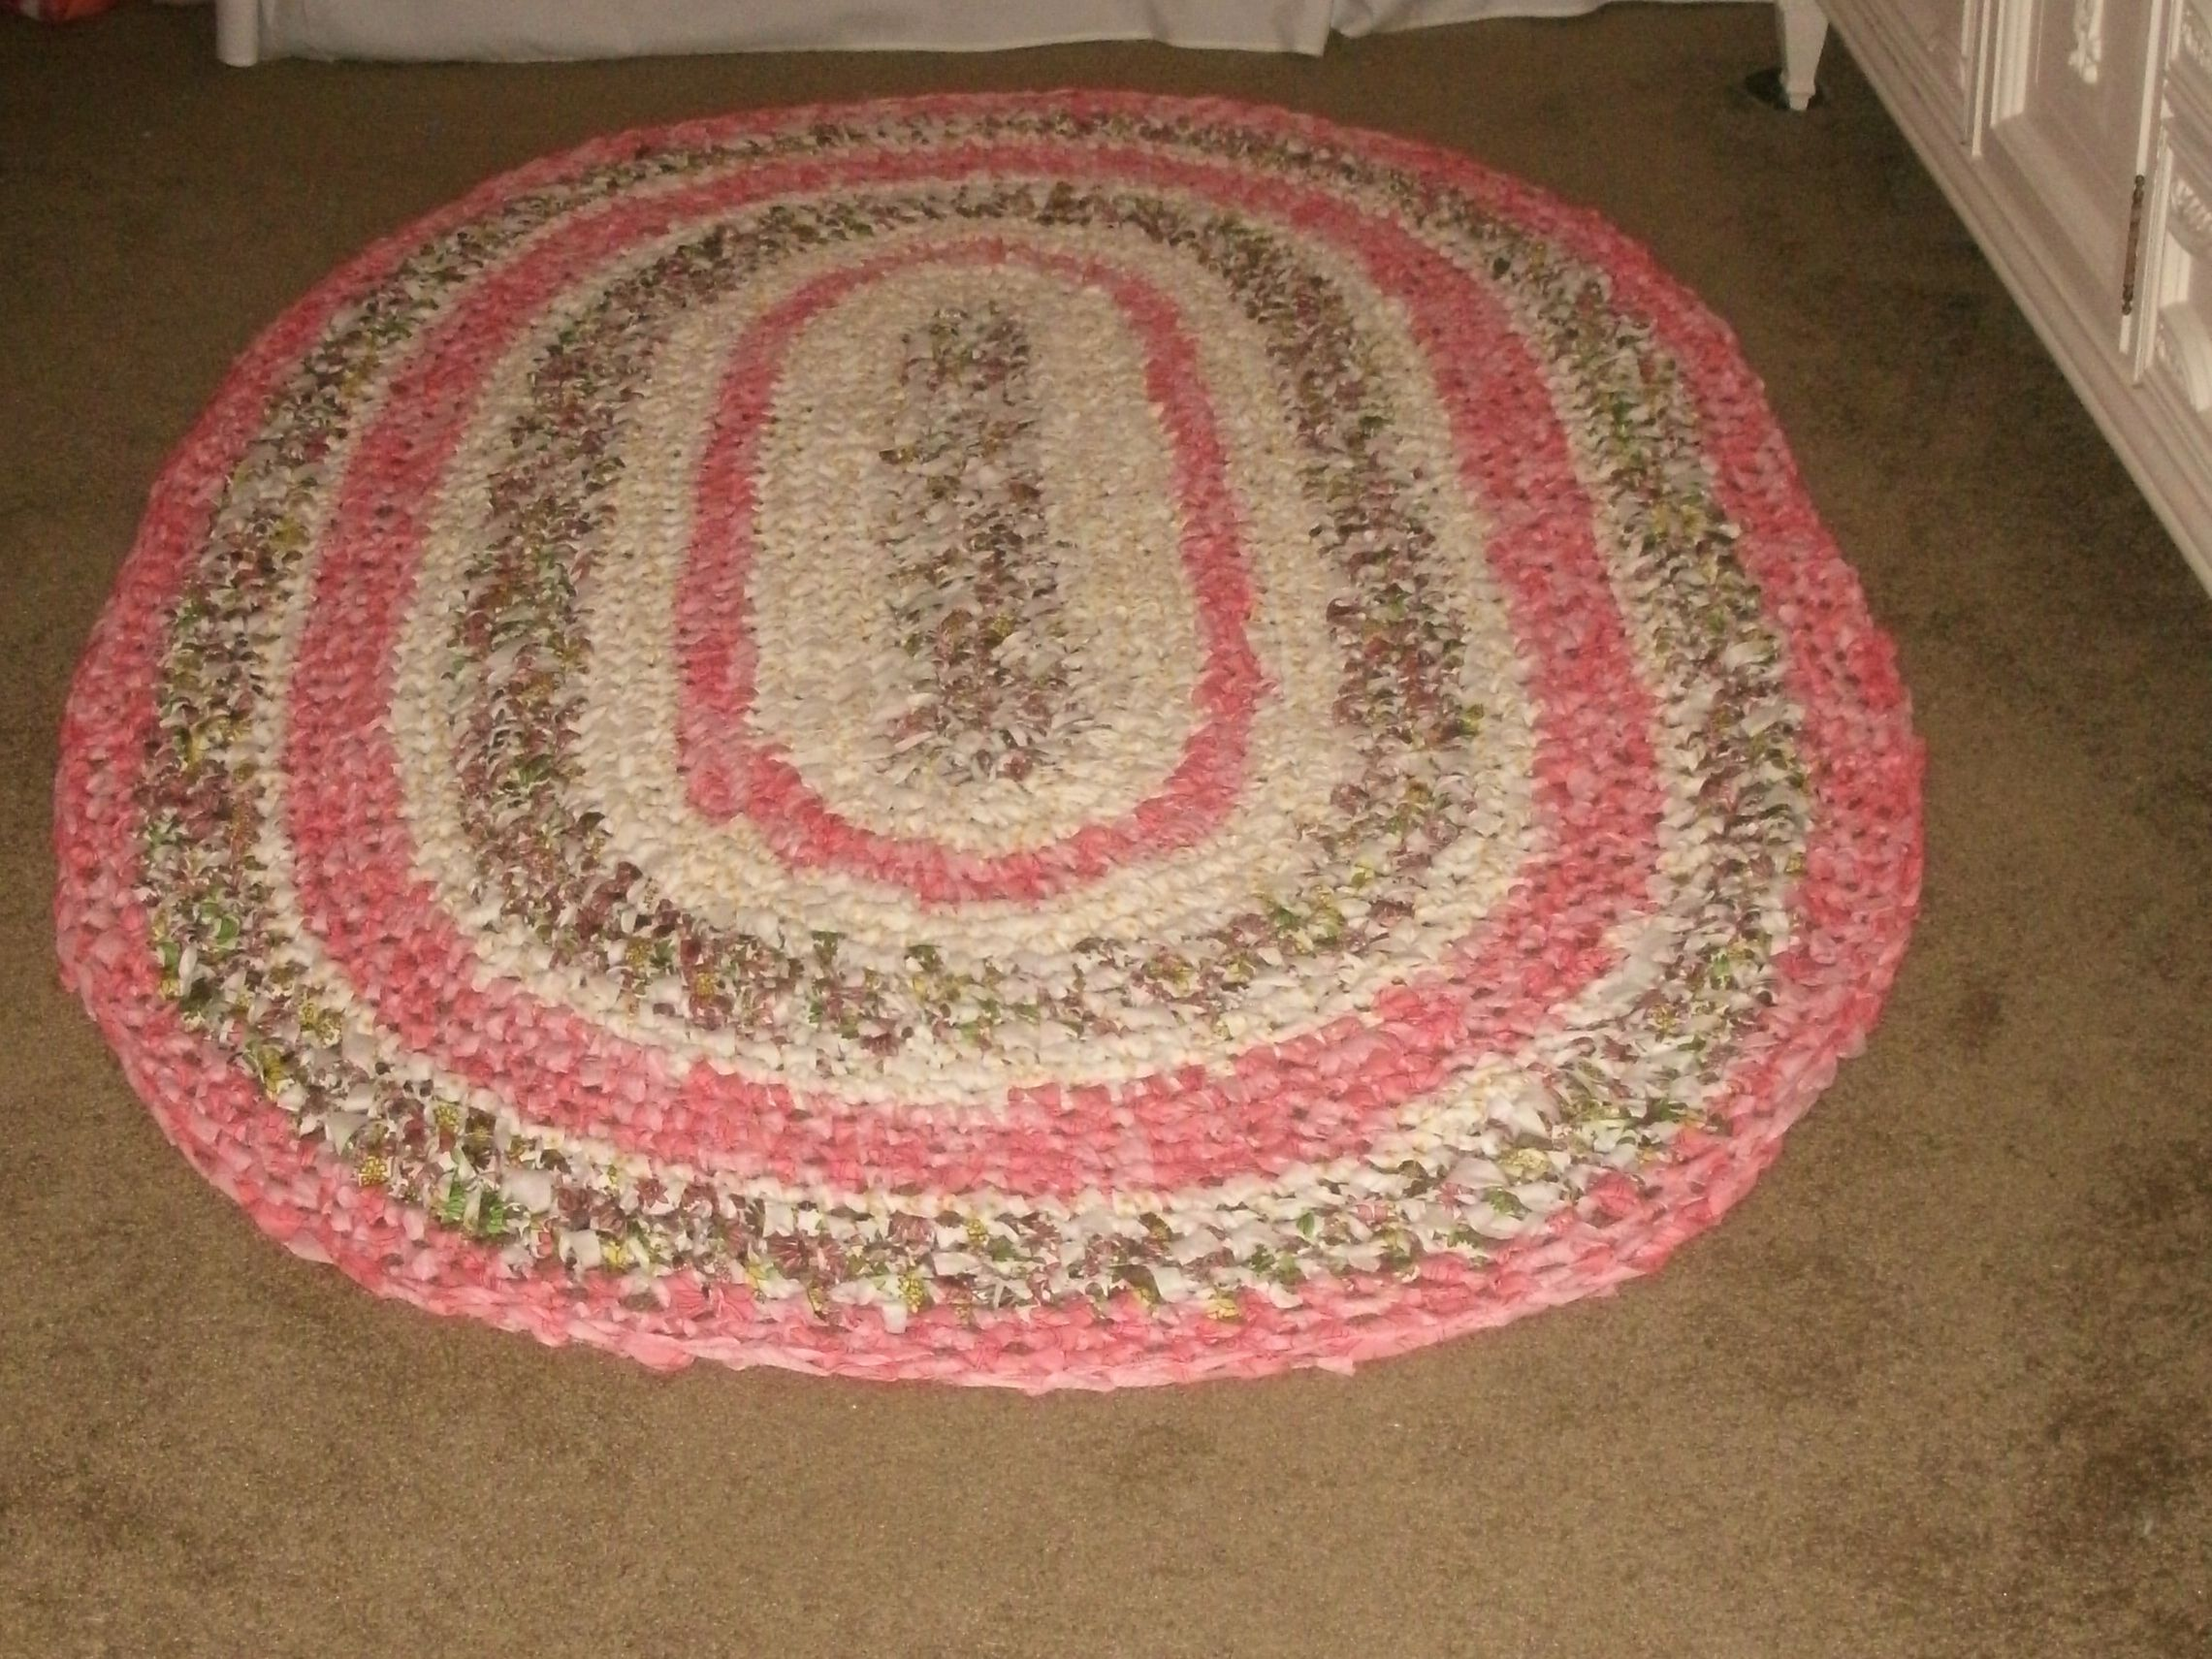 Finest X Area Rug Crochet From Long Strips Of Raw